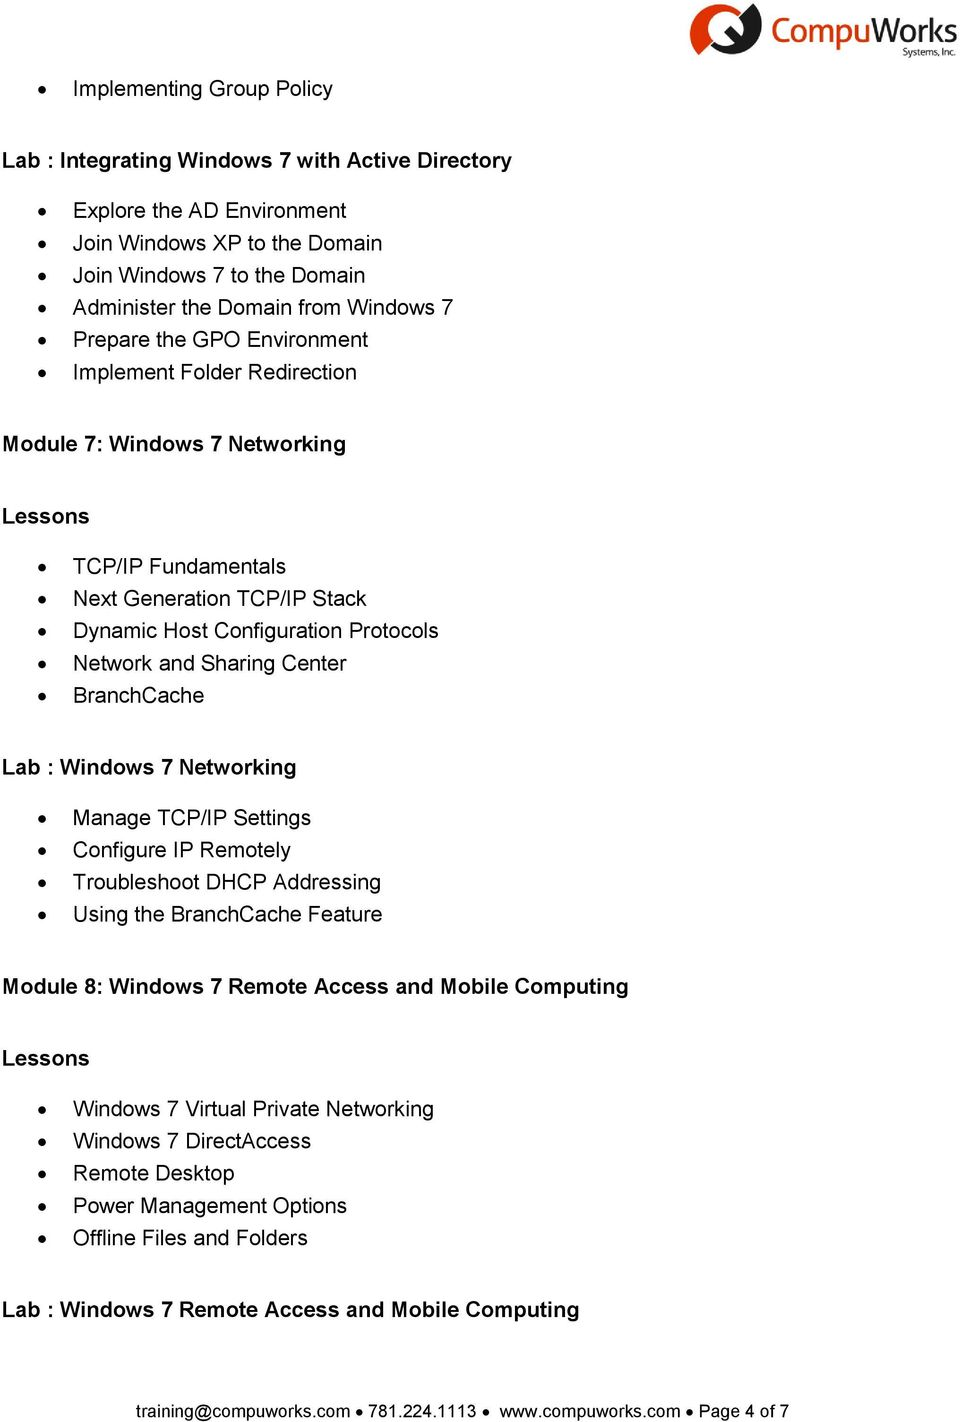 Center BranchCache Lab : Windows 7 Networking Manage TCP/IP Settings Configure IP Remotely Troubleshoot DHCP Addressing Using the BranchCache Feature Module 8: Windows 7 Remote Access and Mobile